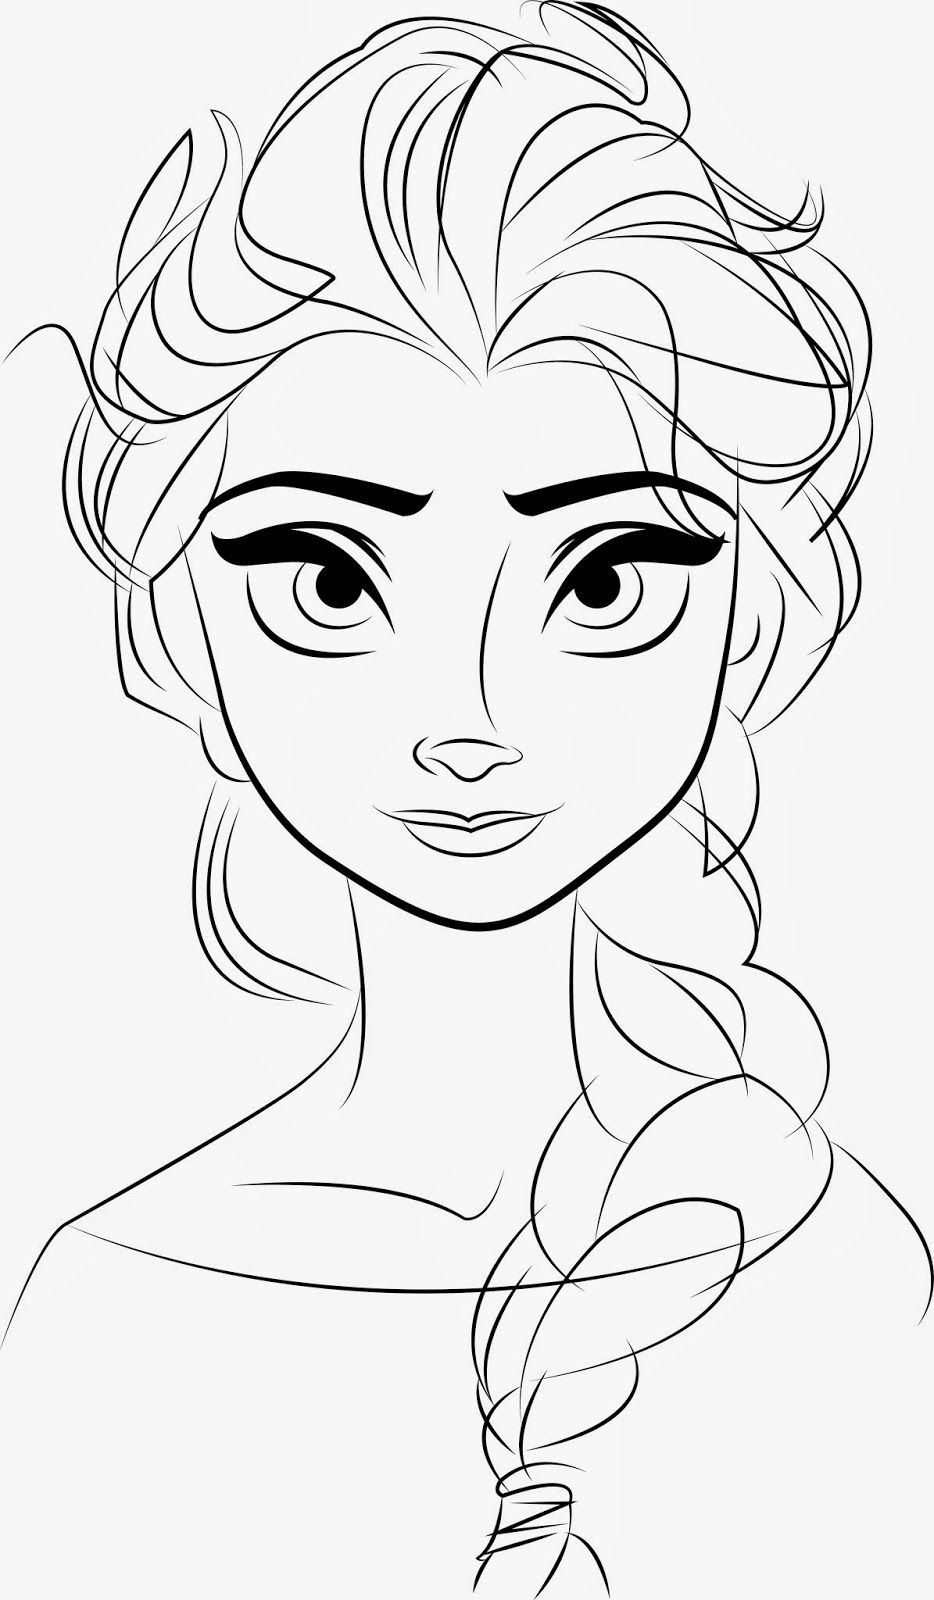 Free Printable Elsa Coloring Page Elsa Coloring Pages Elsa Drawing Easy Disney Drawings